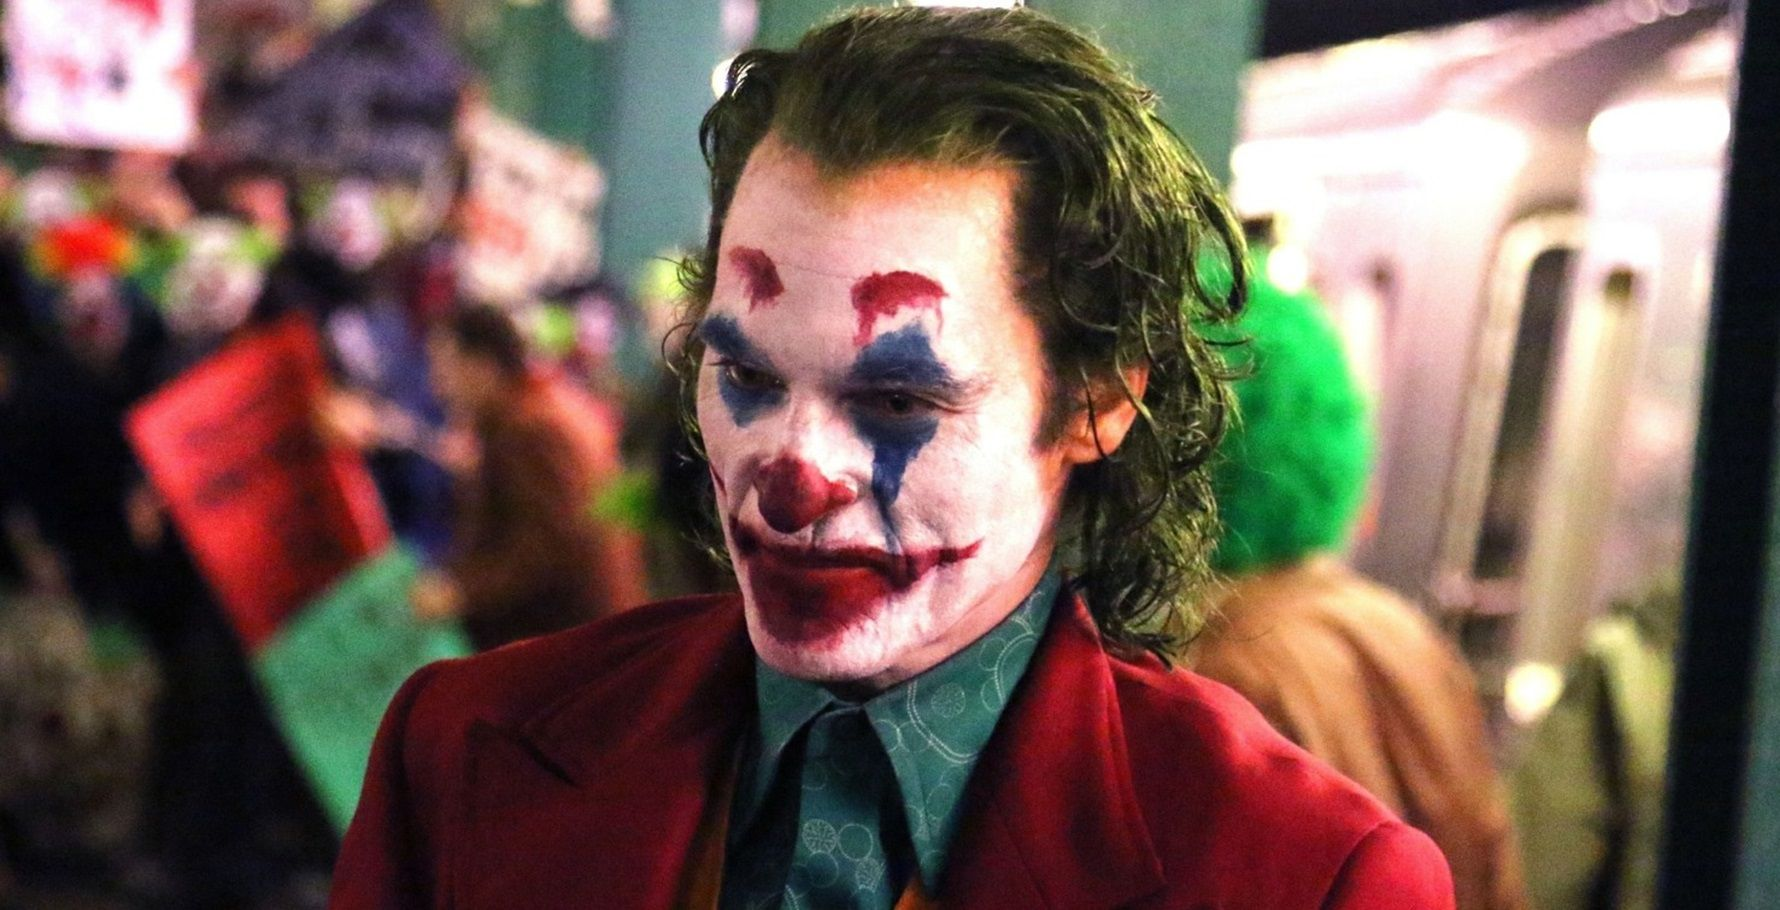 Joker Movie Trailer Music What Song Plays In The Teaser